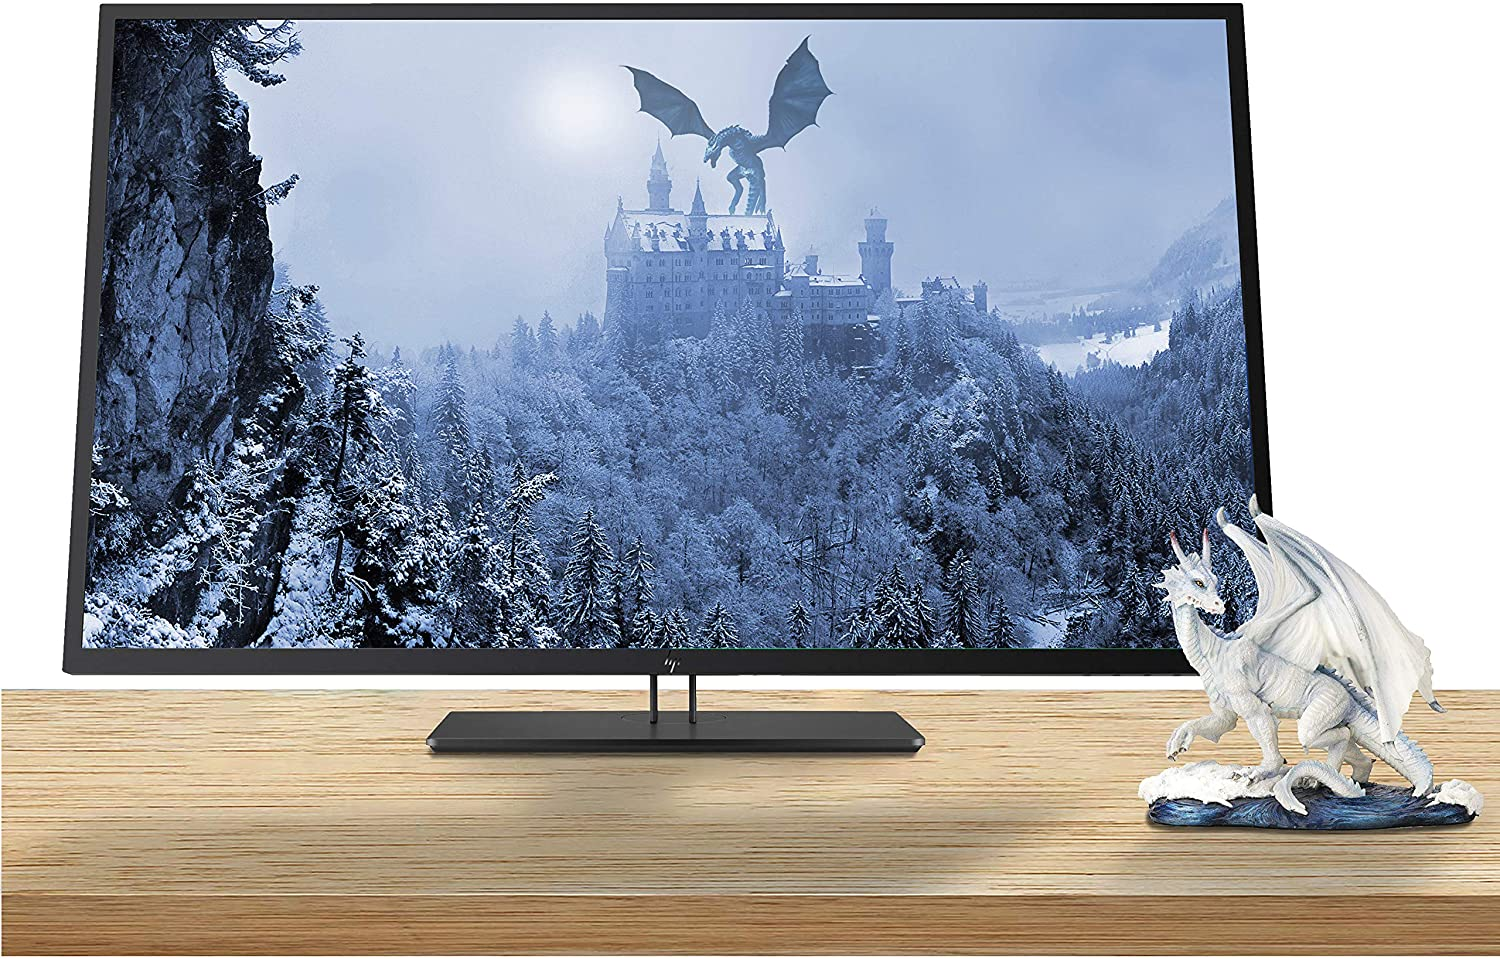 HP Z43 42.5 Inch 4K UHD 3840 x 2160 LED Backlit Gaming Monitor with IPS, Vesa Compatible, Anti-Glare, Tilt and Swivel, Black Pearl (USB-C, HDMI and DisplayPort)